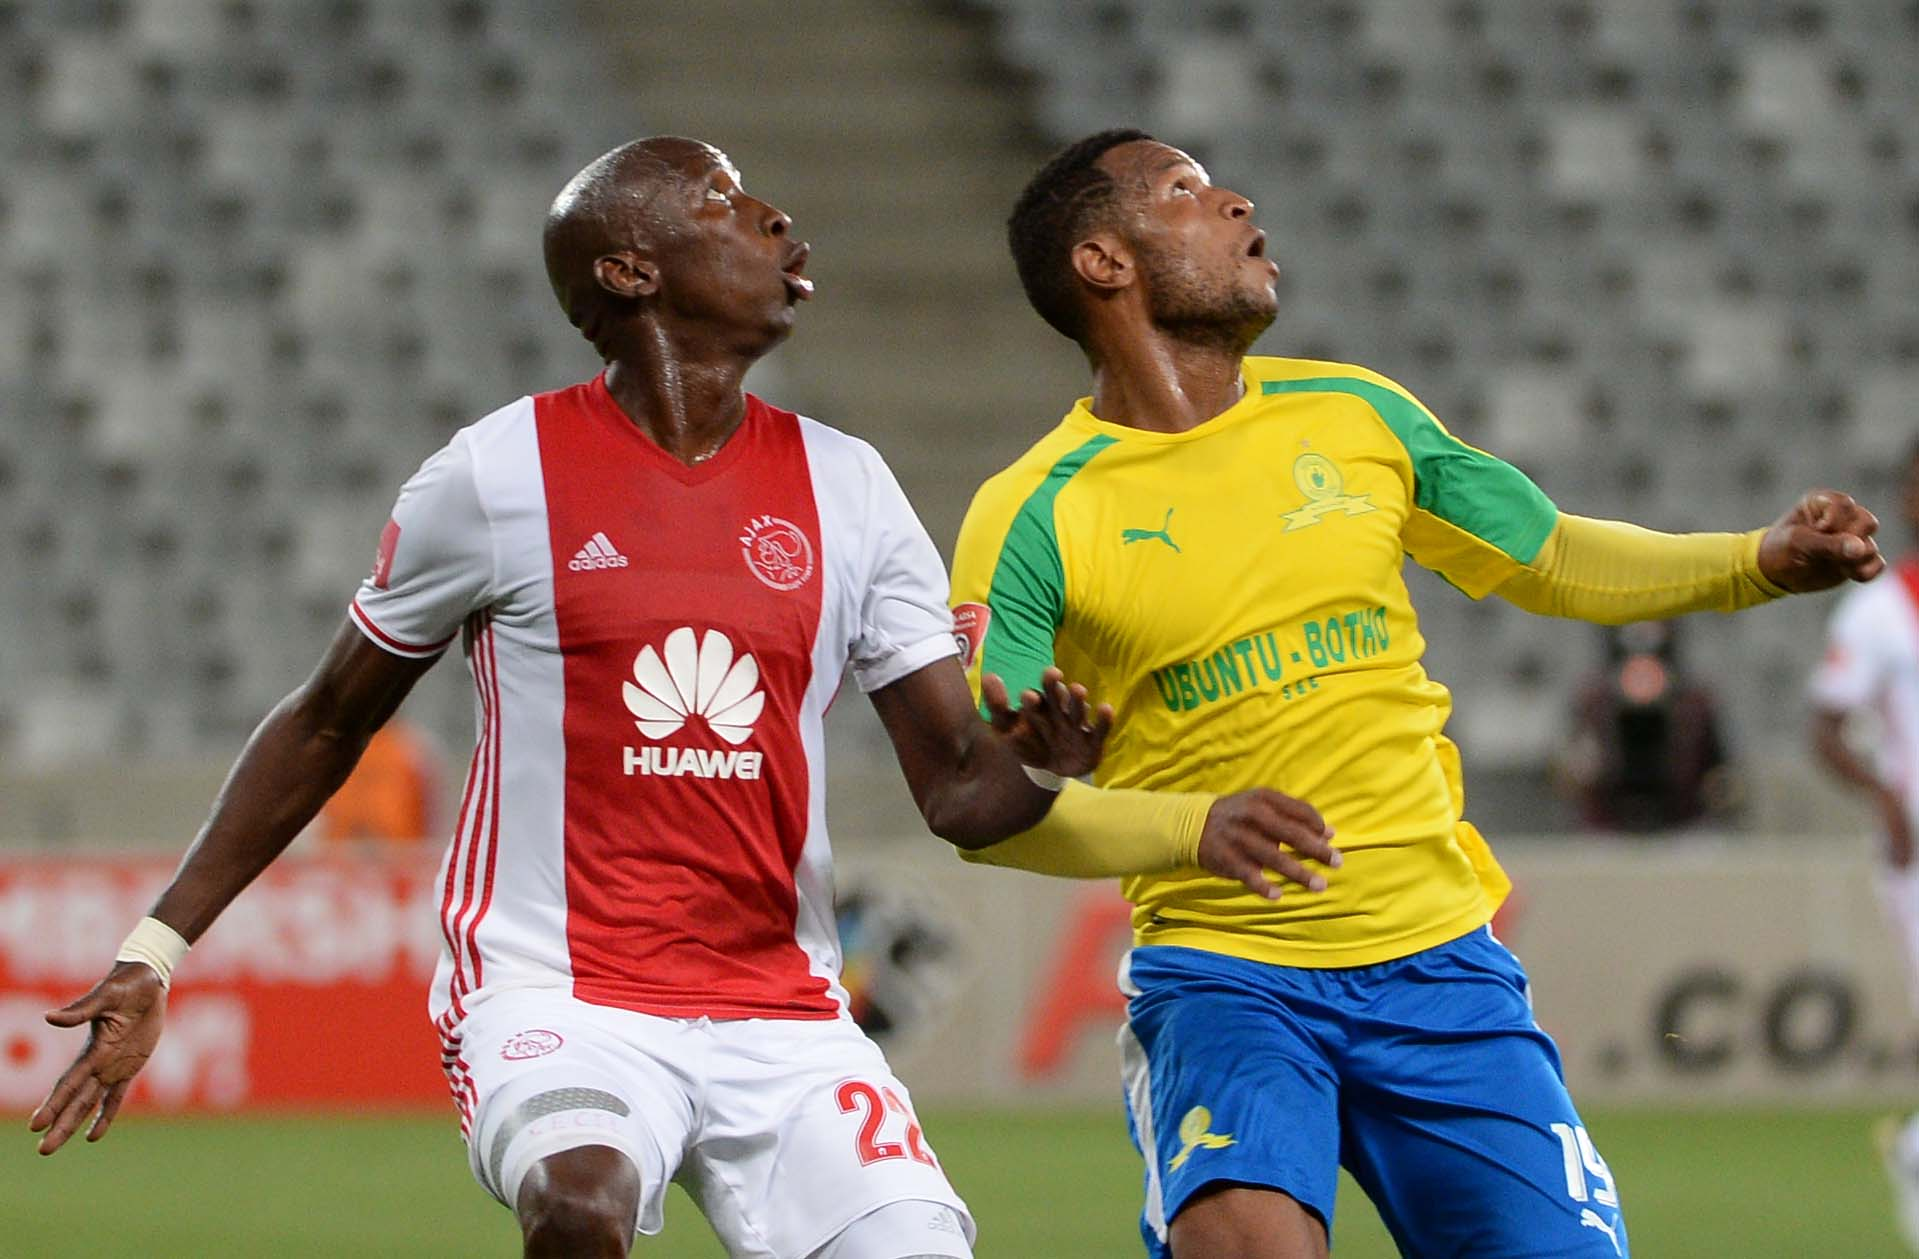 CAPE TOWN, SOUTH AFRICA - NOVEMBER 30: Mzikayise Mashaba of Mamelodi Sundowns and Luphiwana Mark Mayambela  of Ajax Cape Town during the the Absa Premiership match between Ajax Cape Town and Mamelodi Sundowns at Cape Town Stadium on November 30, 2016 in Cape Town, South Africa. (Photo by Thinus Maritz/Gallo Images)